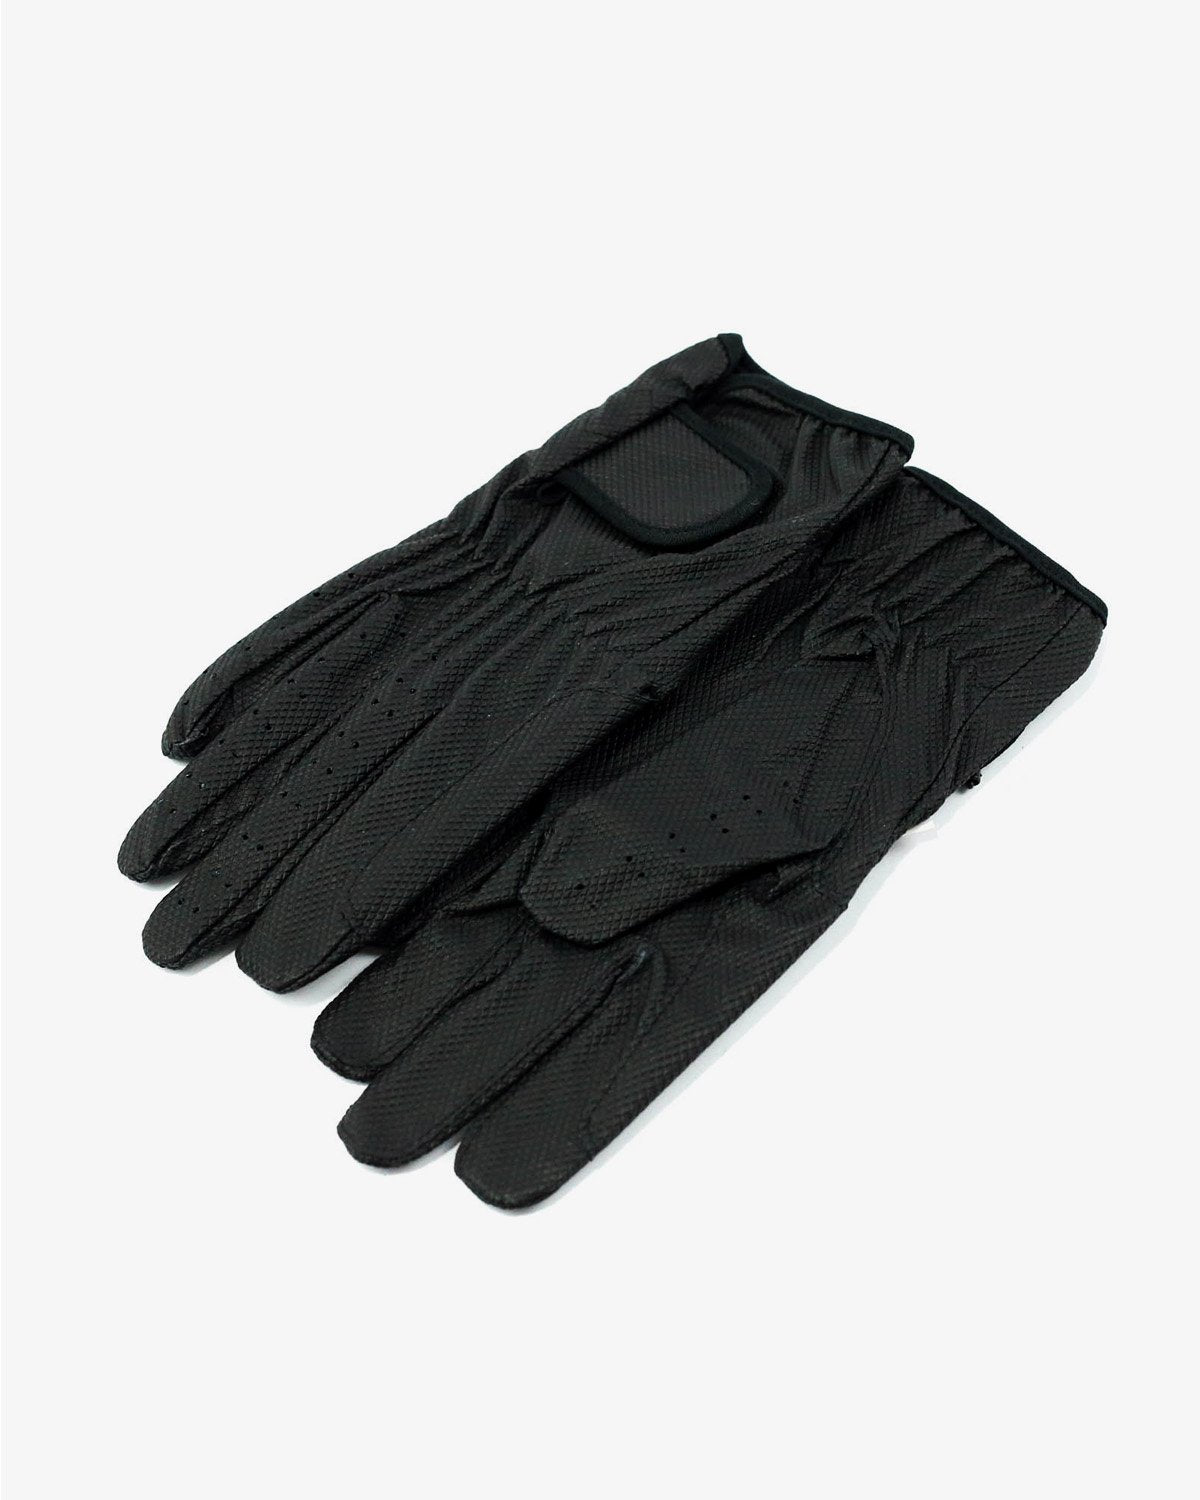 Synthetic Riding Gloves